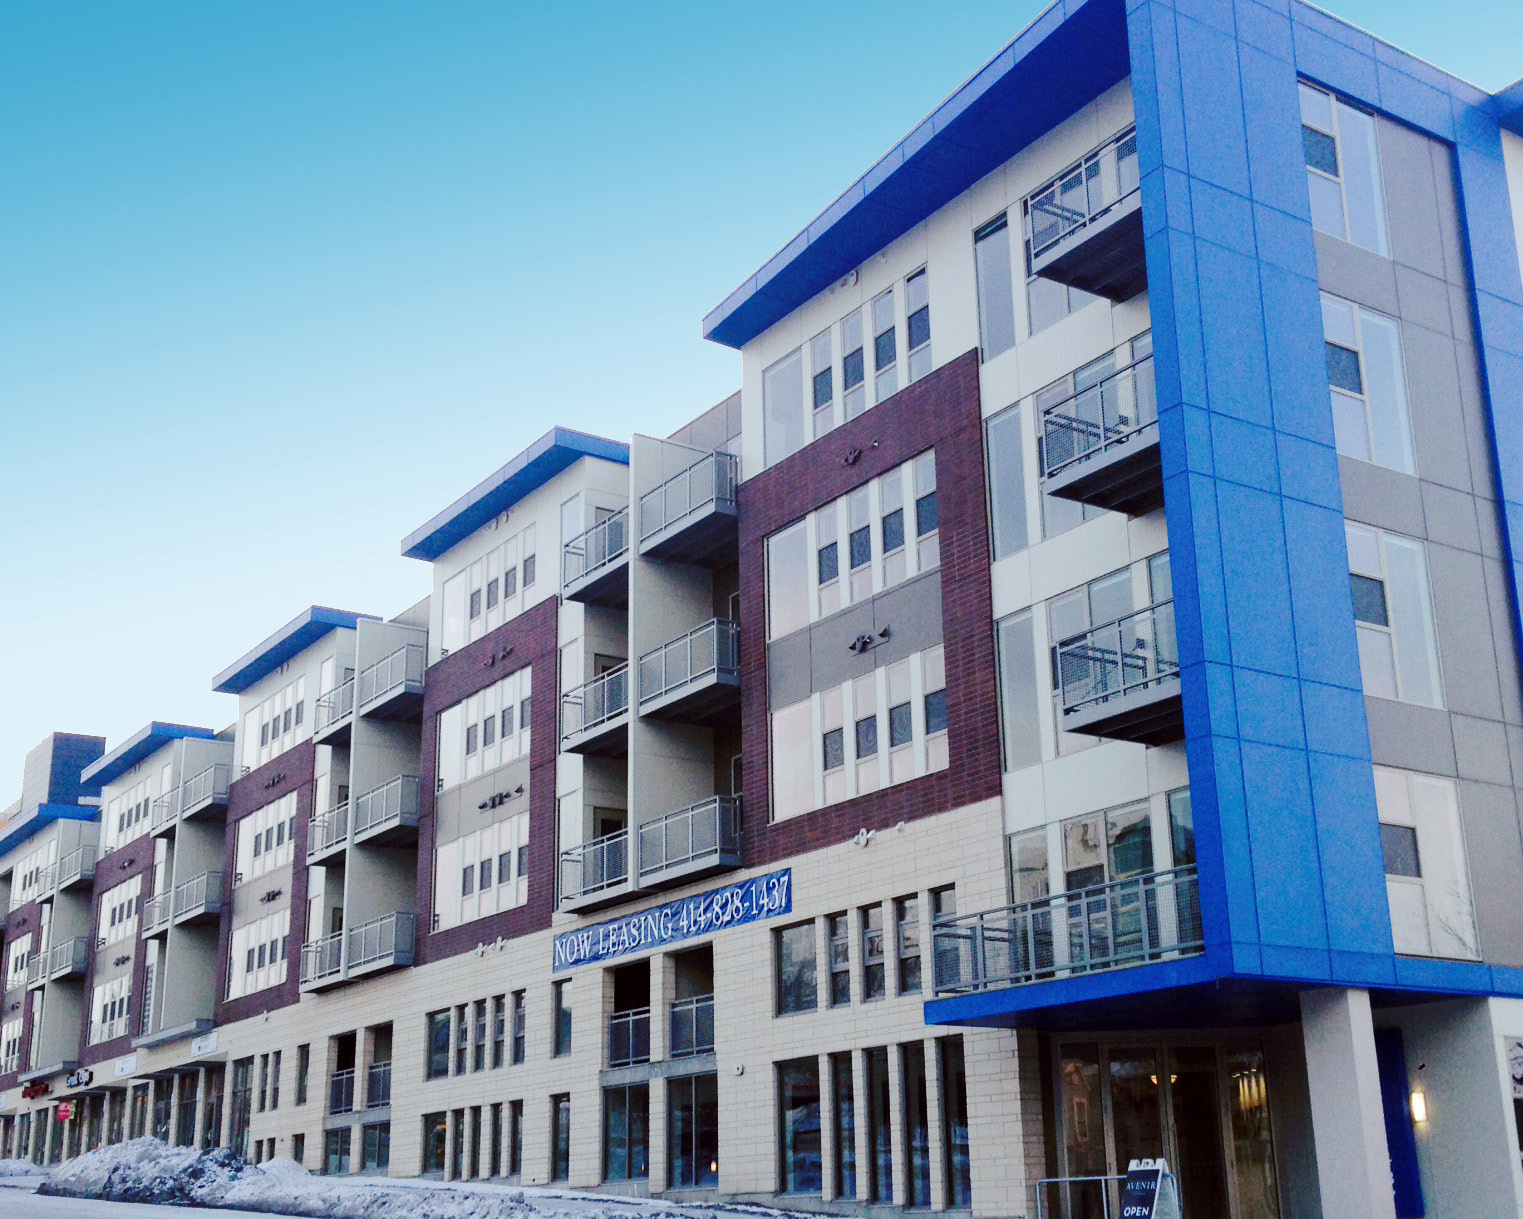 Avenir Mixed Use Development Built with EnduraMax, Harvard Brik & Cordova Stone